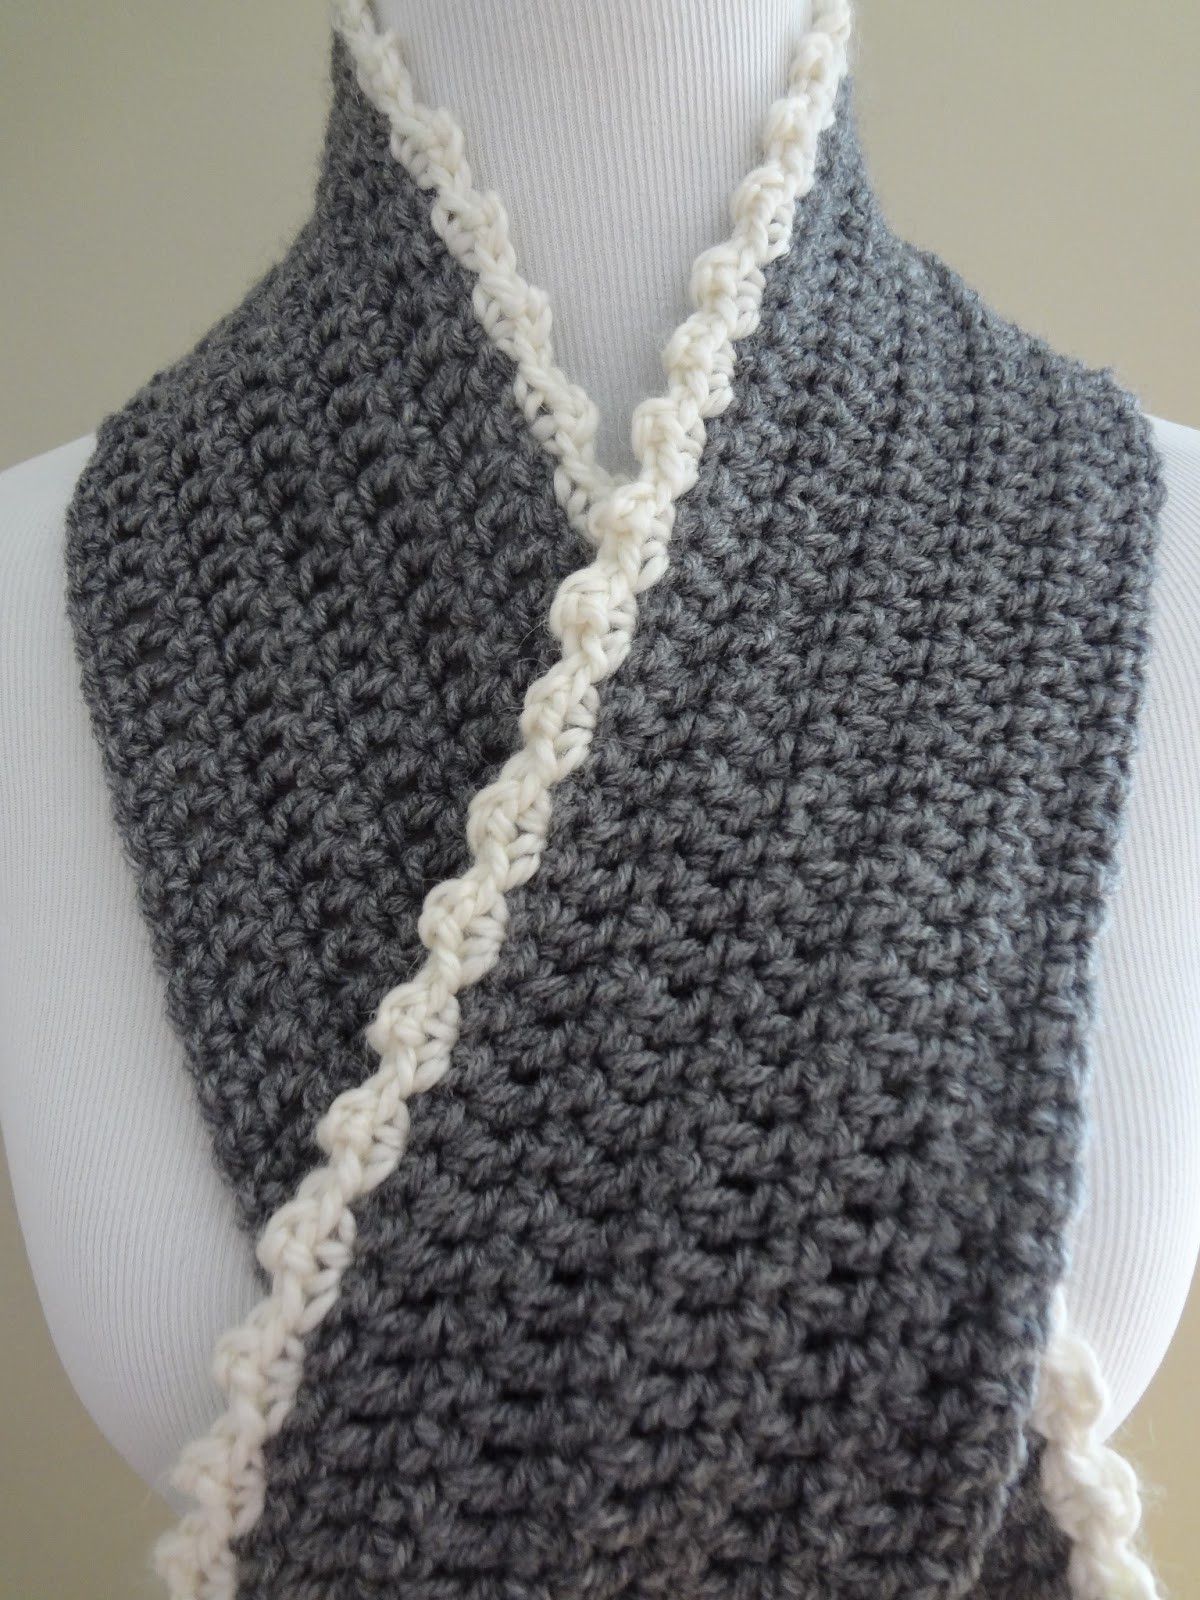 Beautiful La S Crochet Scarf Pattern Crochet and Knit Crochet Stitches for Scarves Of Gorgeous 48 Ideas Crochet Stitches for Scarves